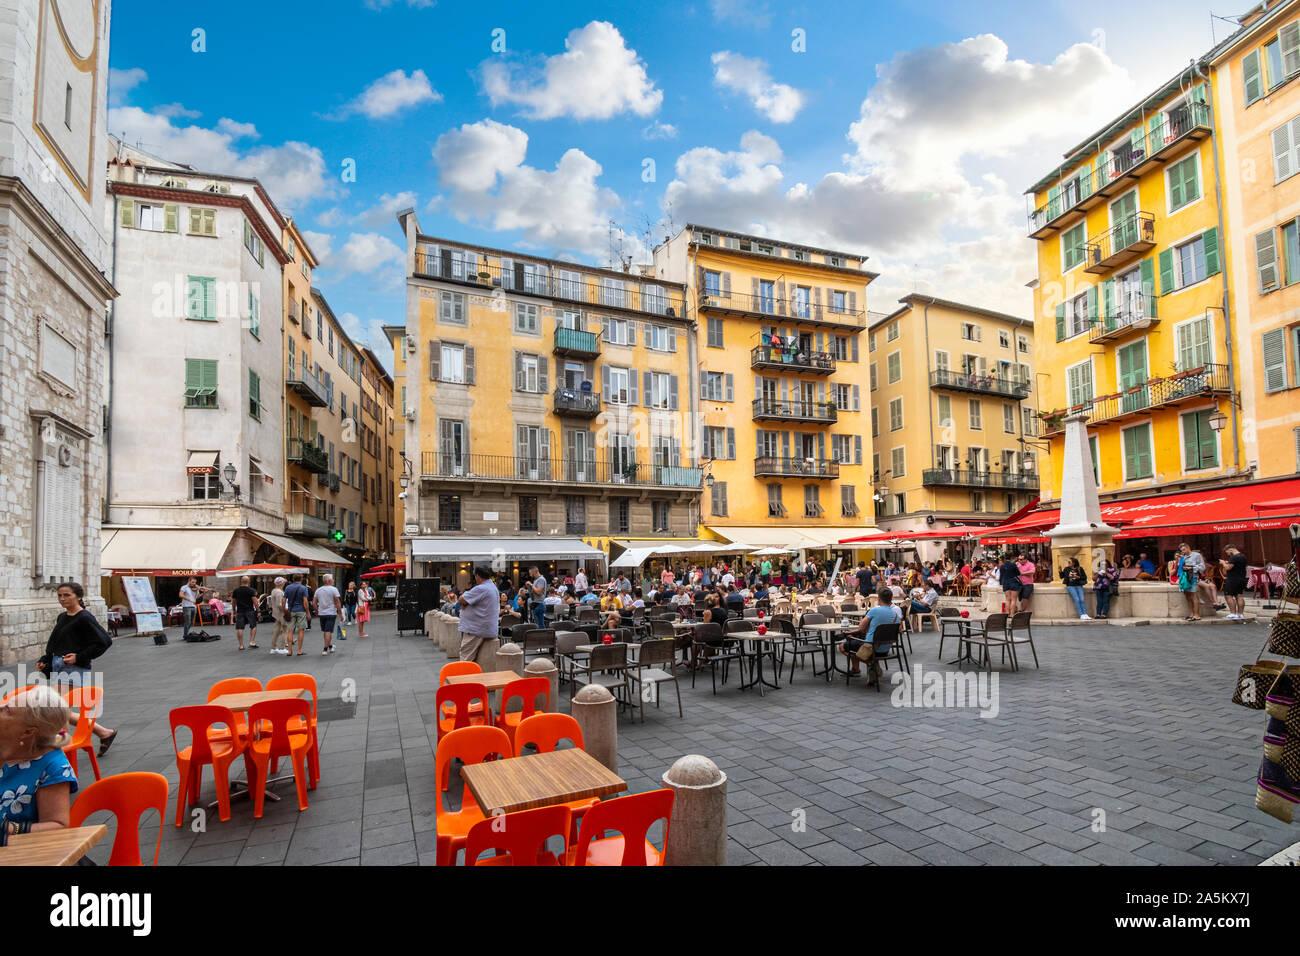 Tourists enjoy a late afternoon at the shops and cafes at Place Rossetti in Old Town Nice, on the French Riviera Stock Photo